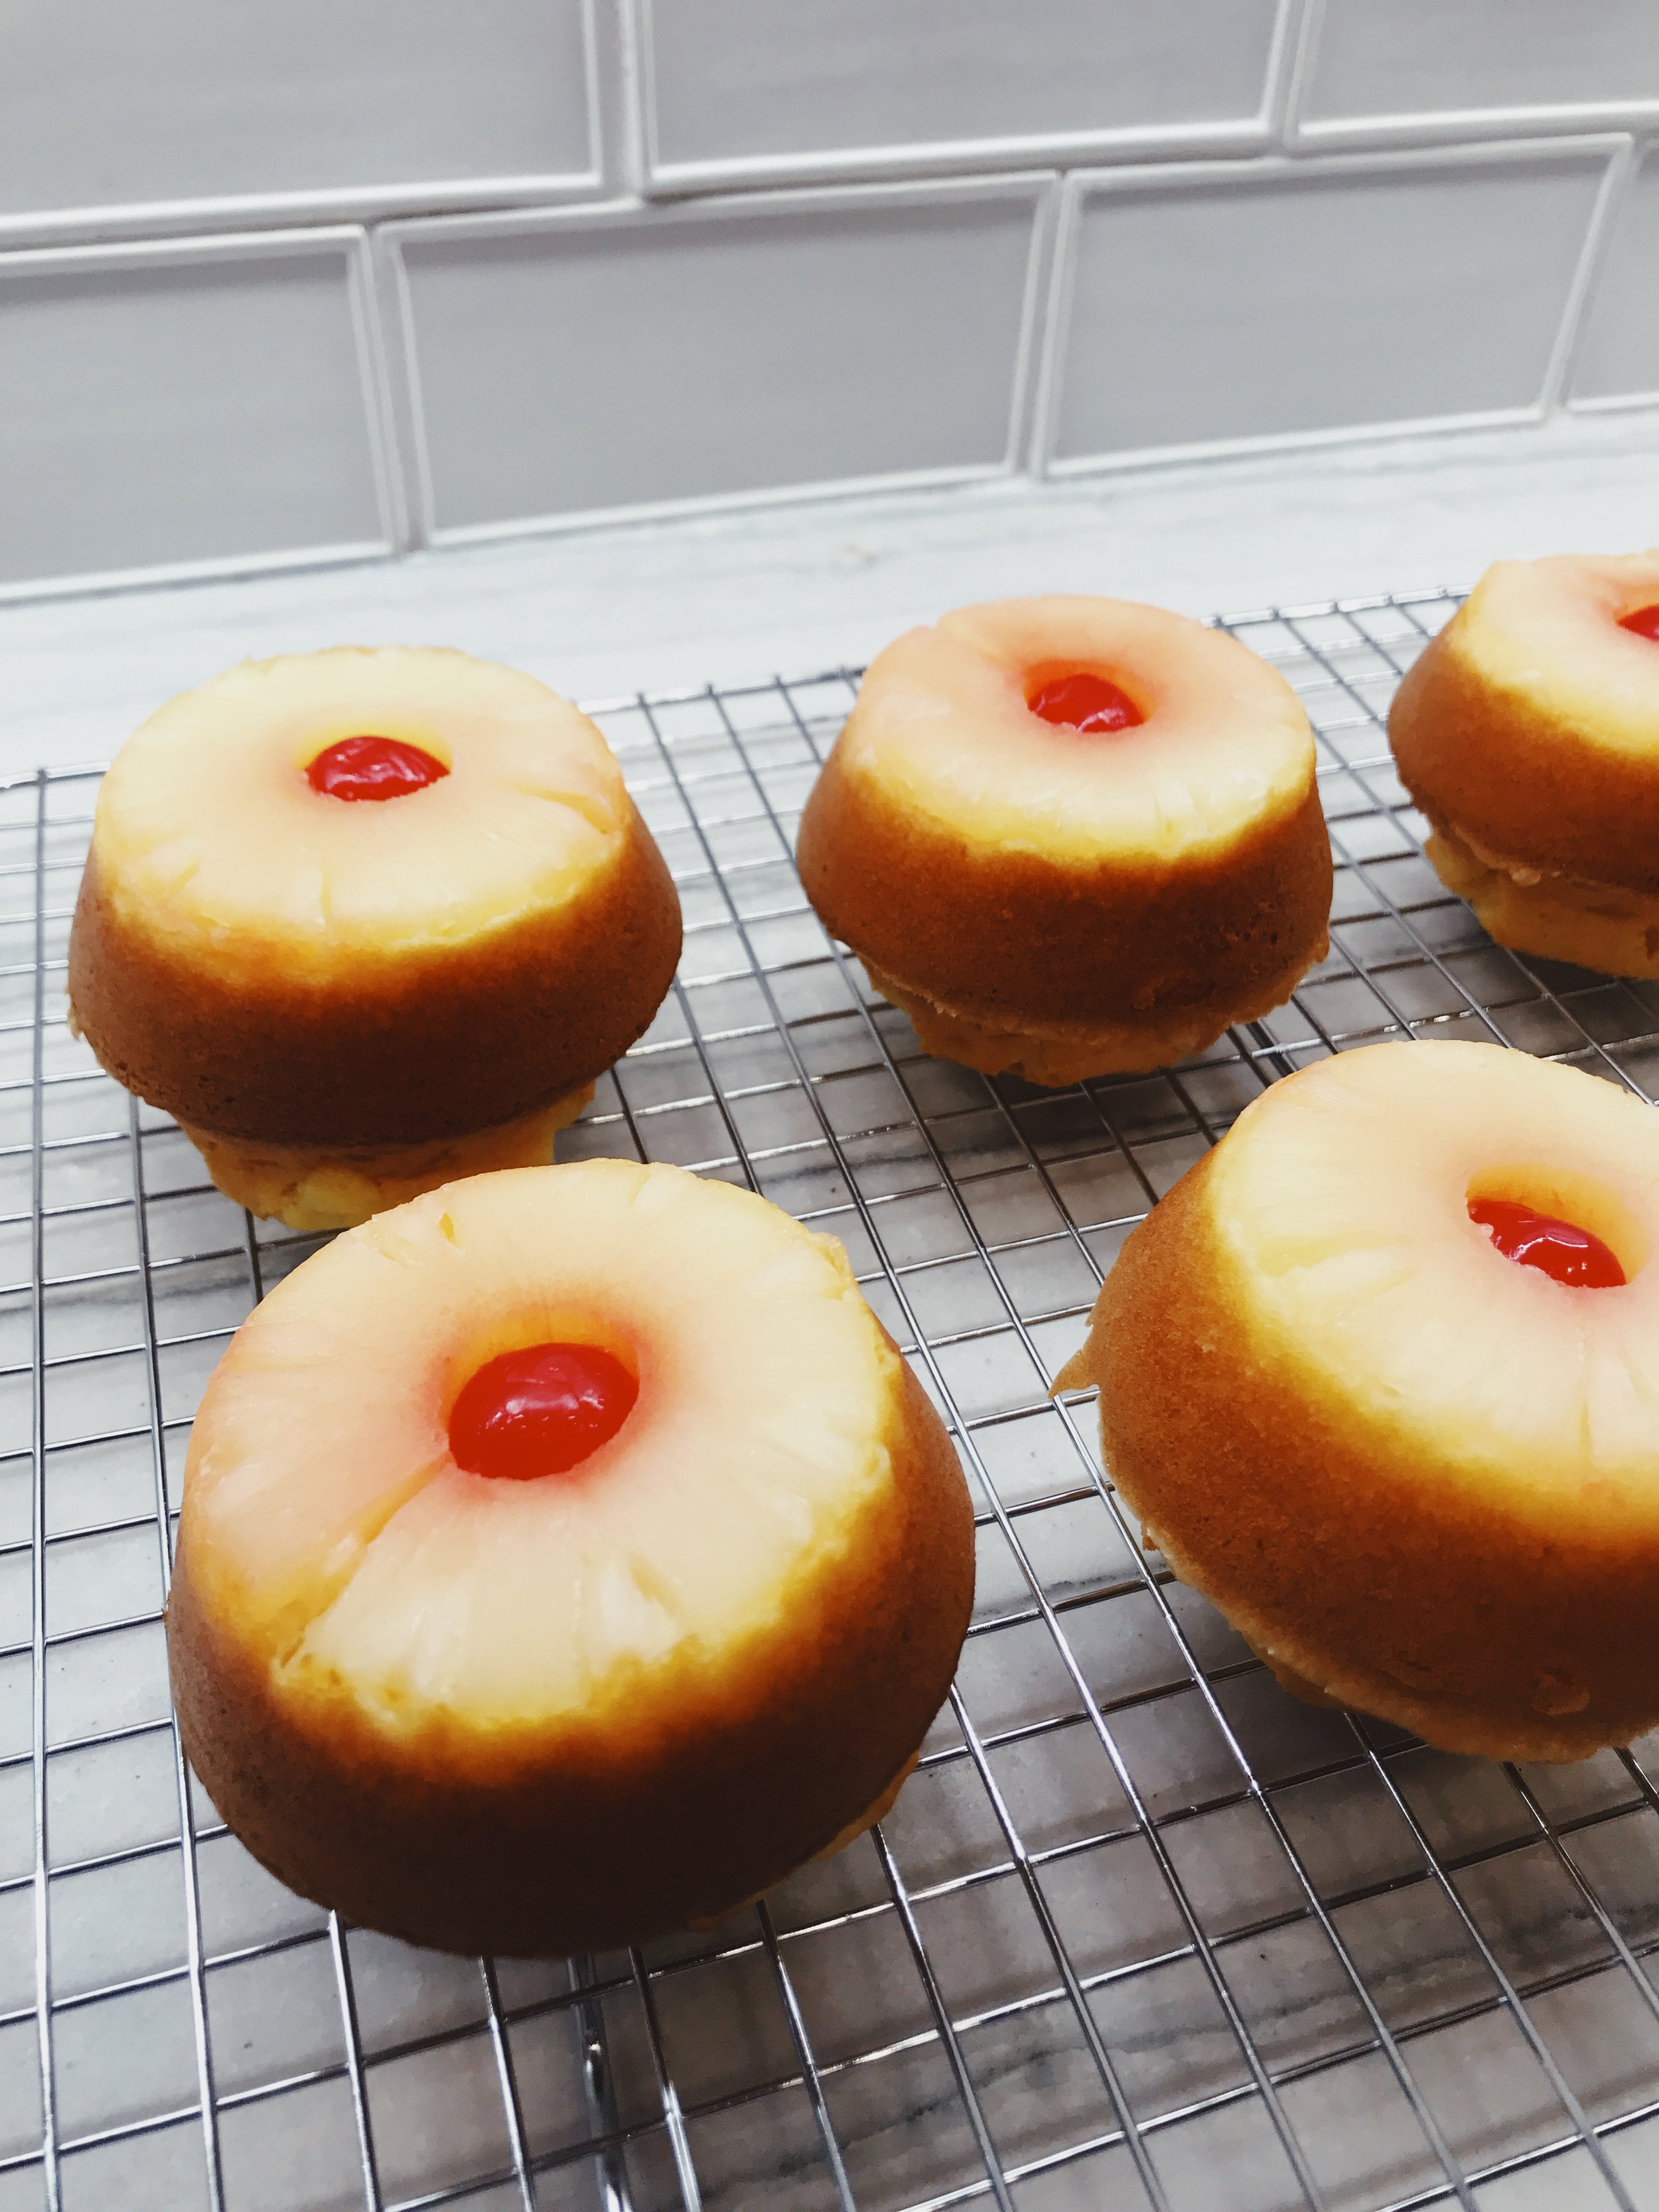 Pineapple upside down cake recipe ideas. Pineapple cake rolled in chopped pecans and coconut. Baked using Metallic Bakeware pans. #sponsored #upside #down #cake Holiday cookie recipes. Making memories in the kitchen with your kids. How to make browned butter pecan pretzel cookies and upside down pineapple cakes using Chicago Metallic bakeware. Best bakeware for the cookies, cakes, and muffins. #sponsored #chicago #metallics #holiday #cookies